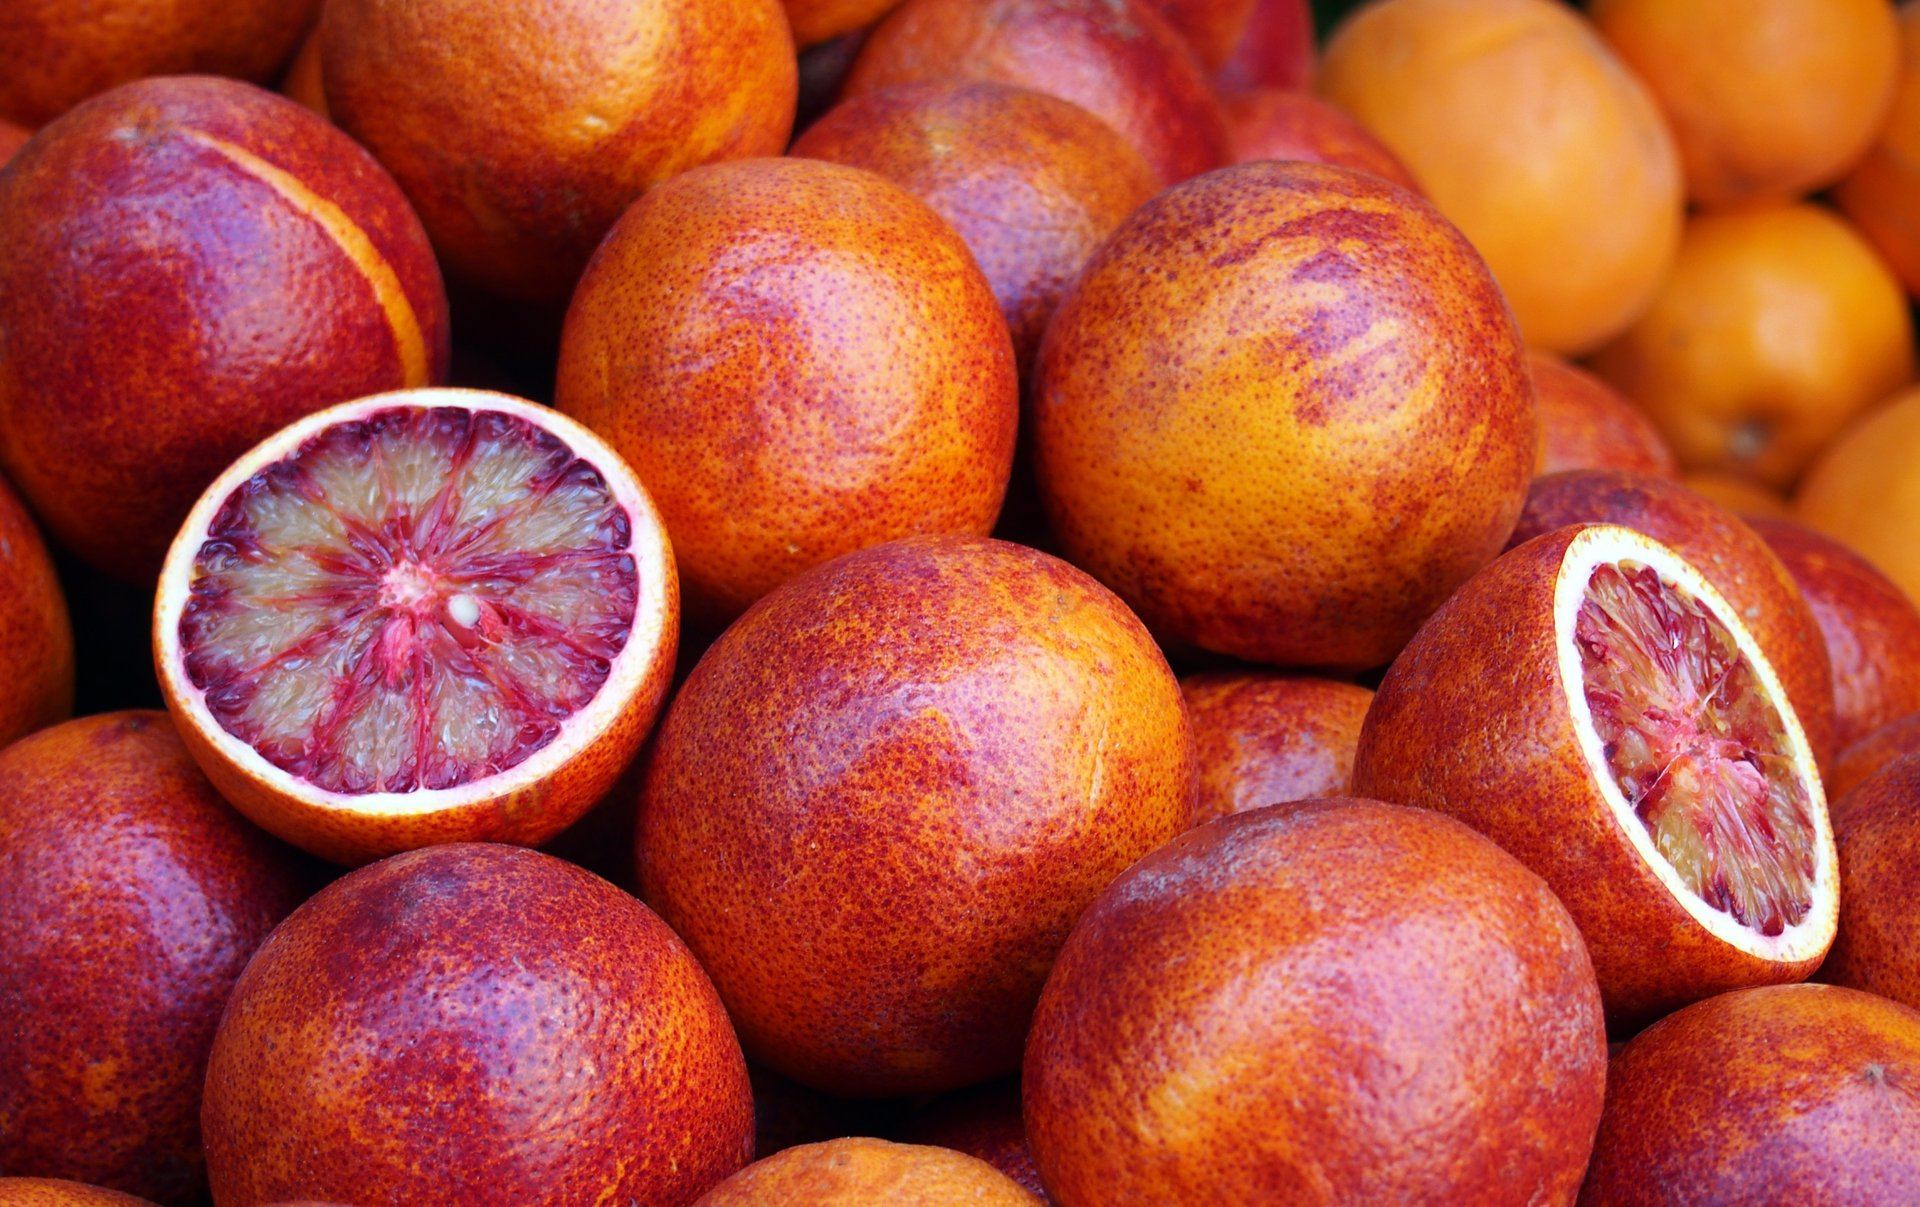 Sicilian Blood Oranges in Sicily 2020 - Best Time